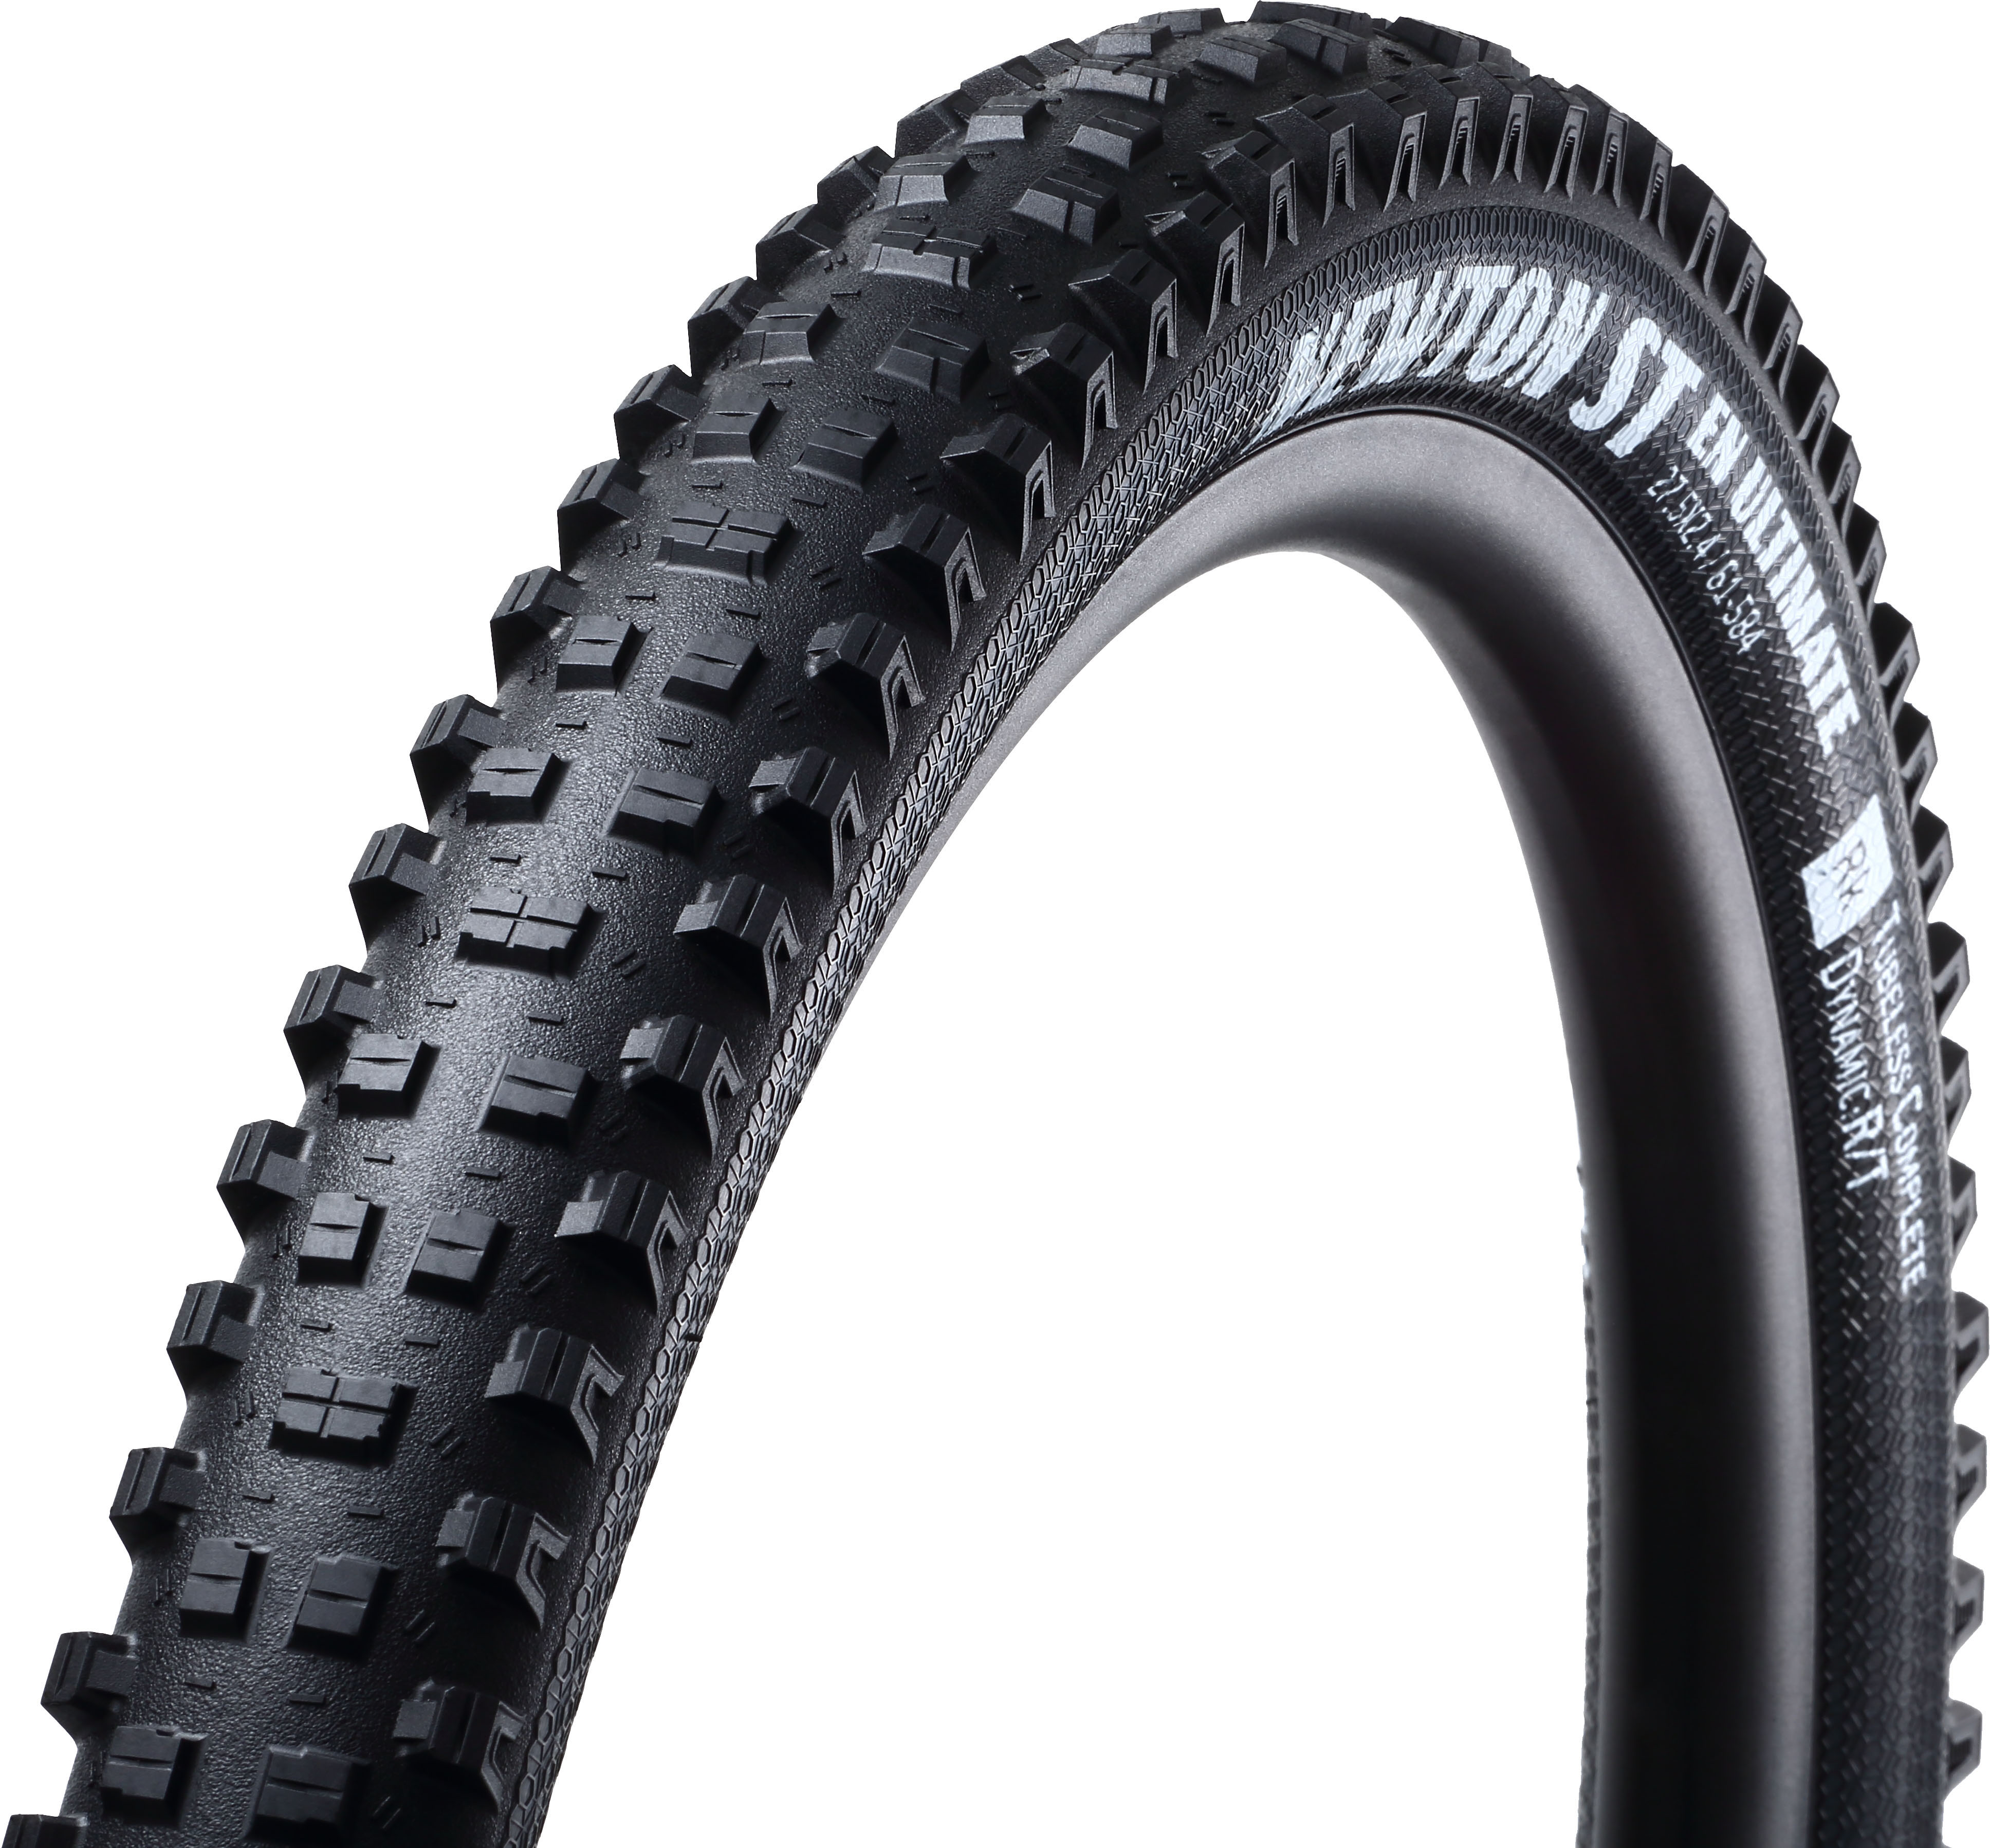 Goodyear Newton ST DH Ultimate Tubeless MTB Tyre | Tyres